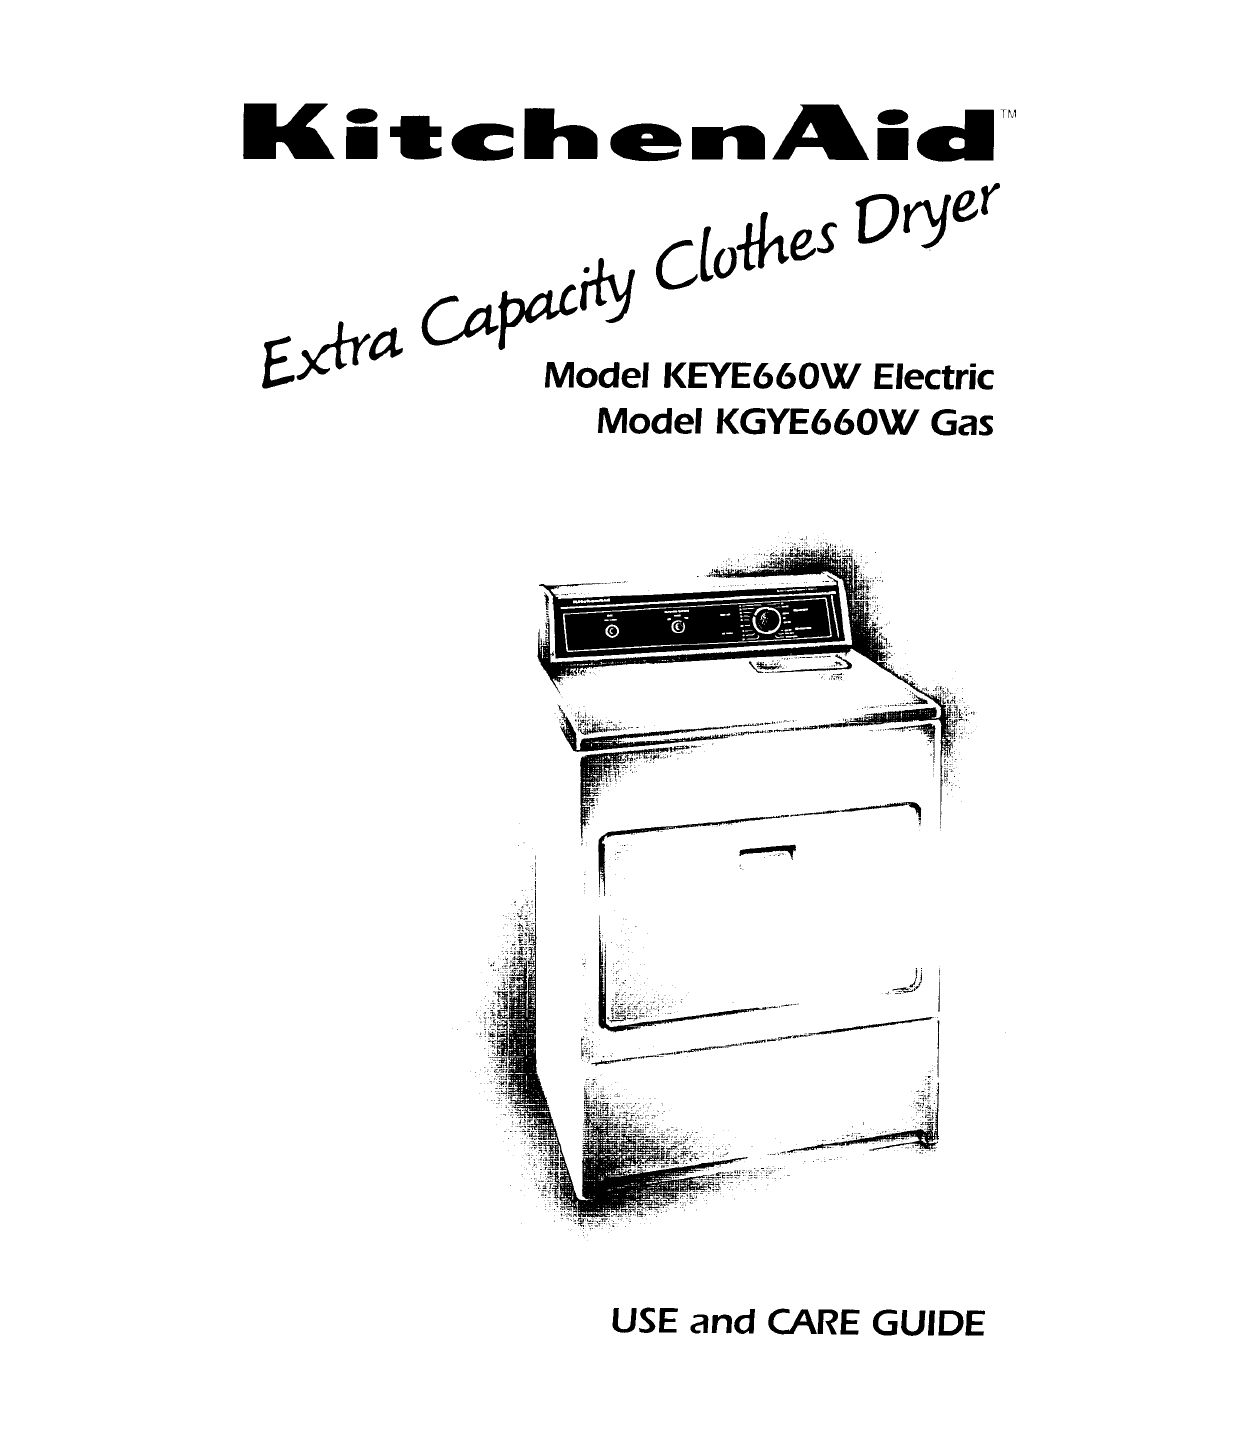 KitchenAid Clothes Dryer KEYE660W User Guide